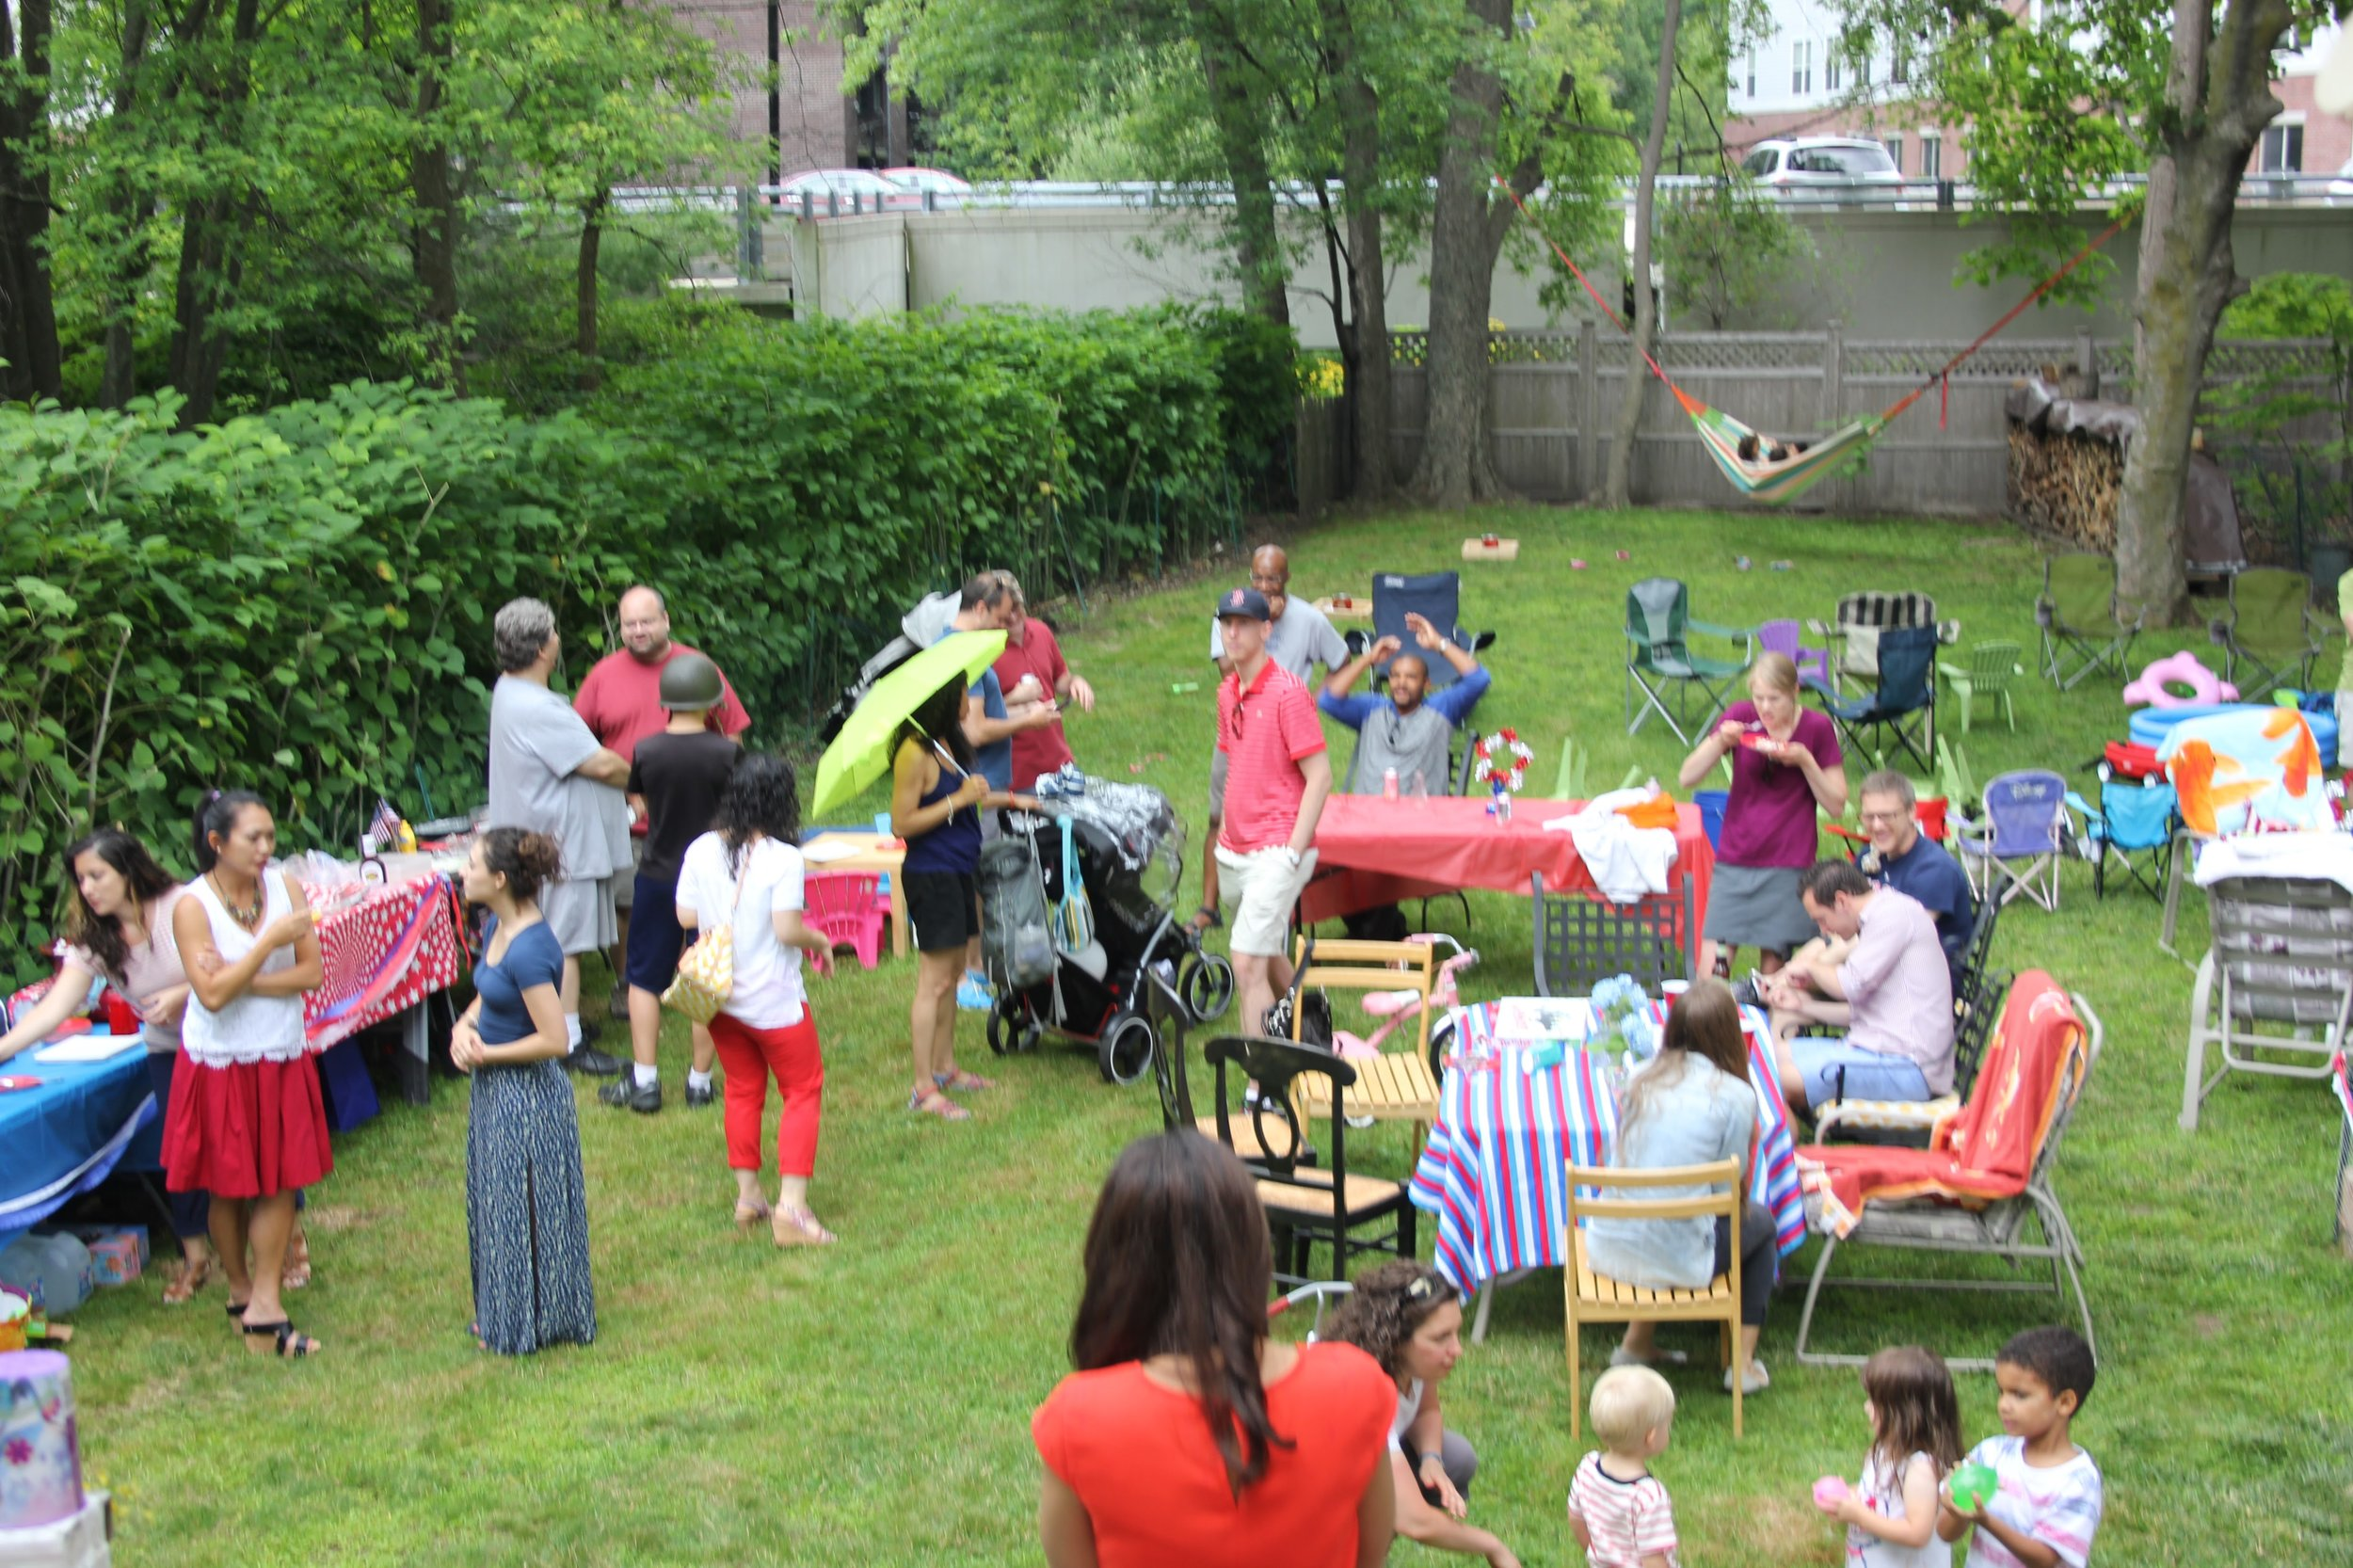 The northern suburbs community group invites the neighborhood over for a cookout.